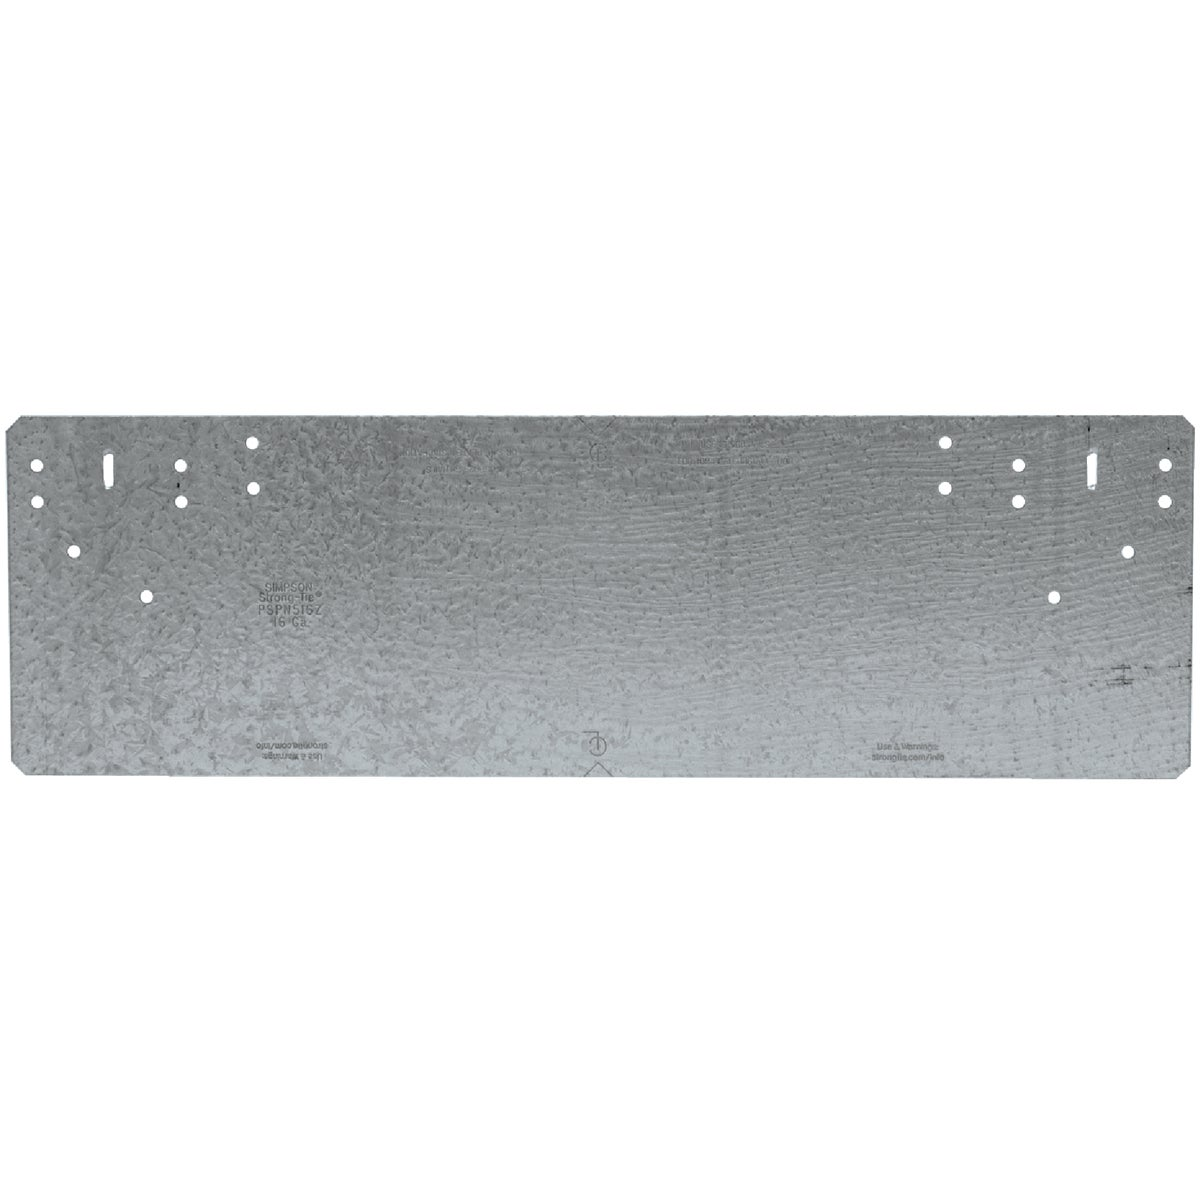 PROTECTIVE PLATE Z-MAX - PSPN516Z by Simpson Strong Tie